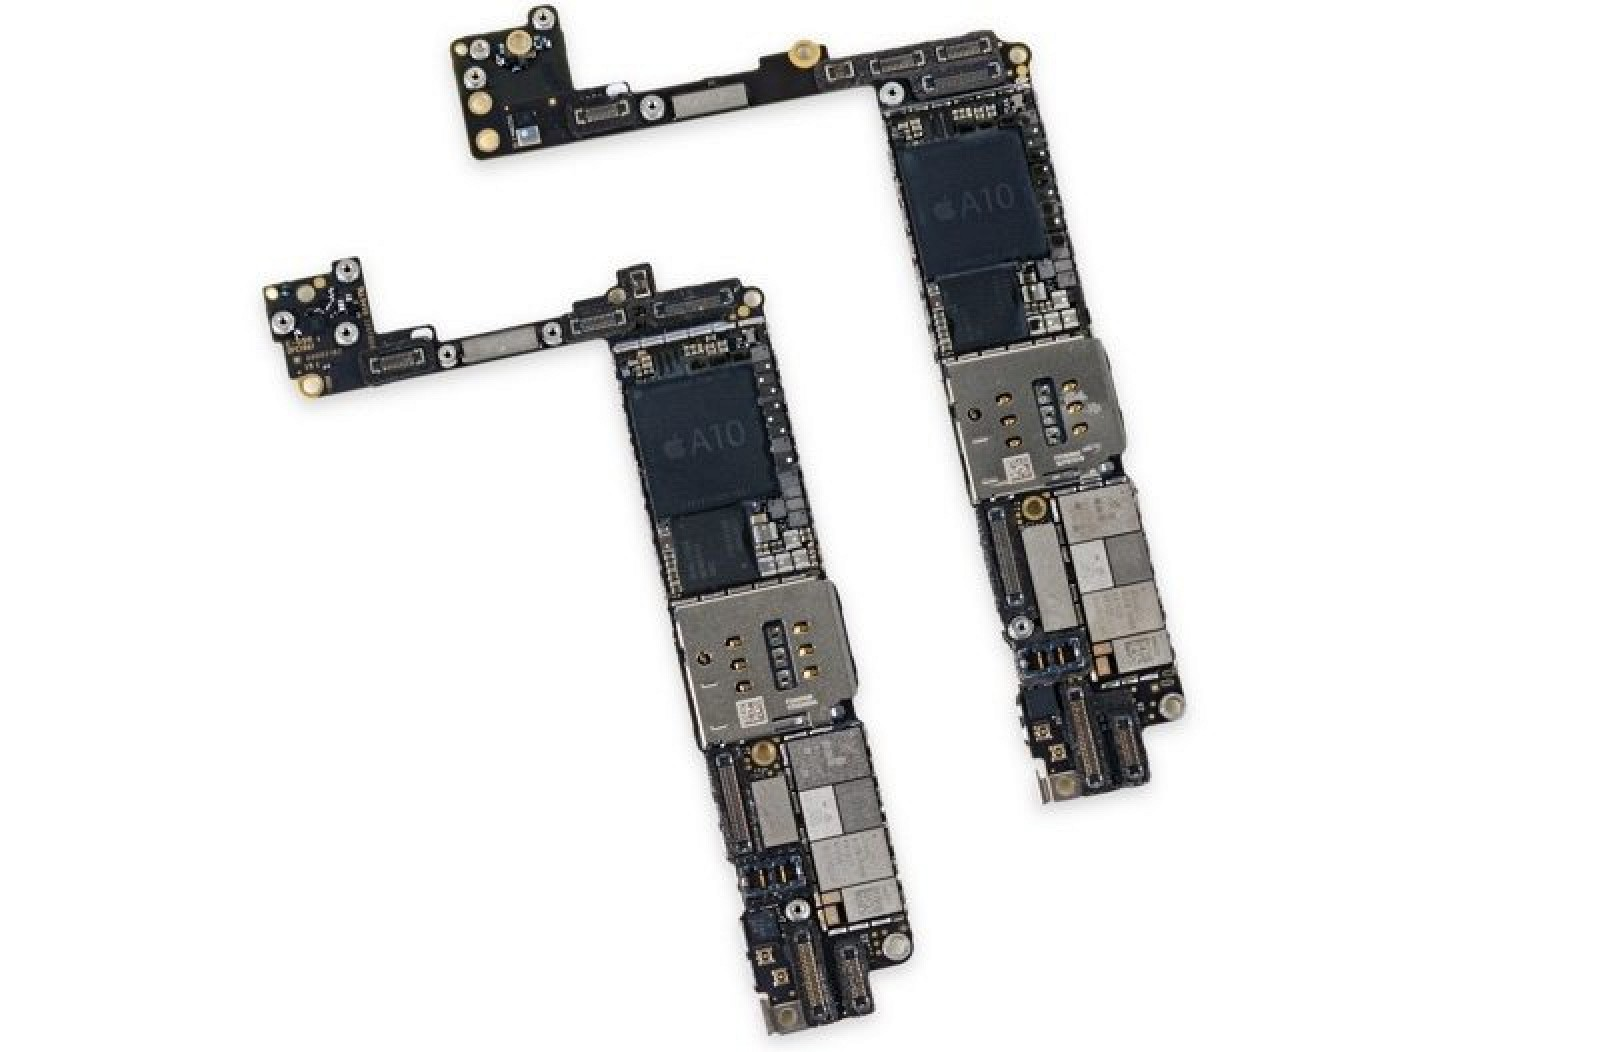 Apple Leasing Equipment To Suppliers Make Sure Key Iphone 8 Flexible Pcb Printing Circuit Board Components Get Made Macrumors